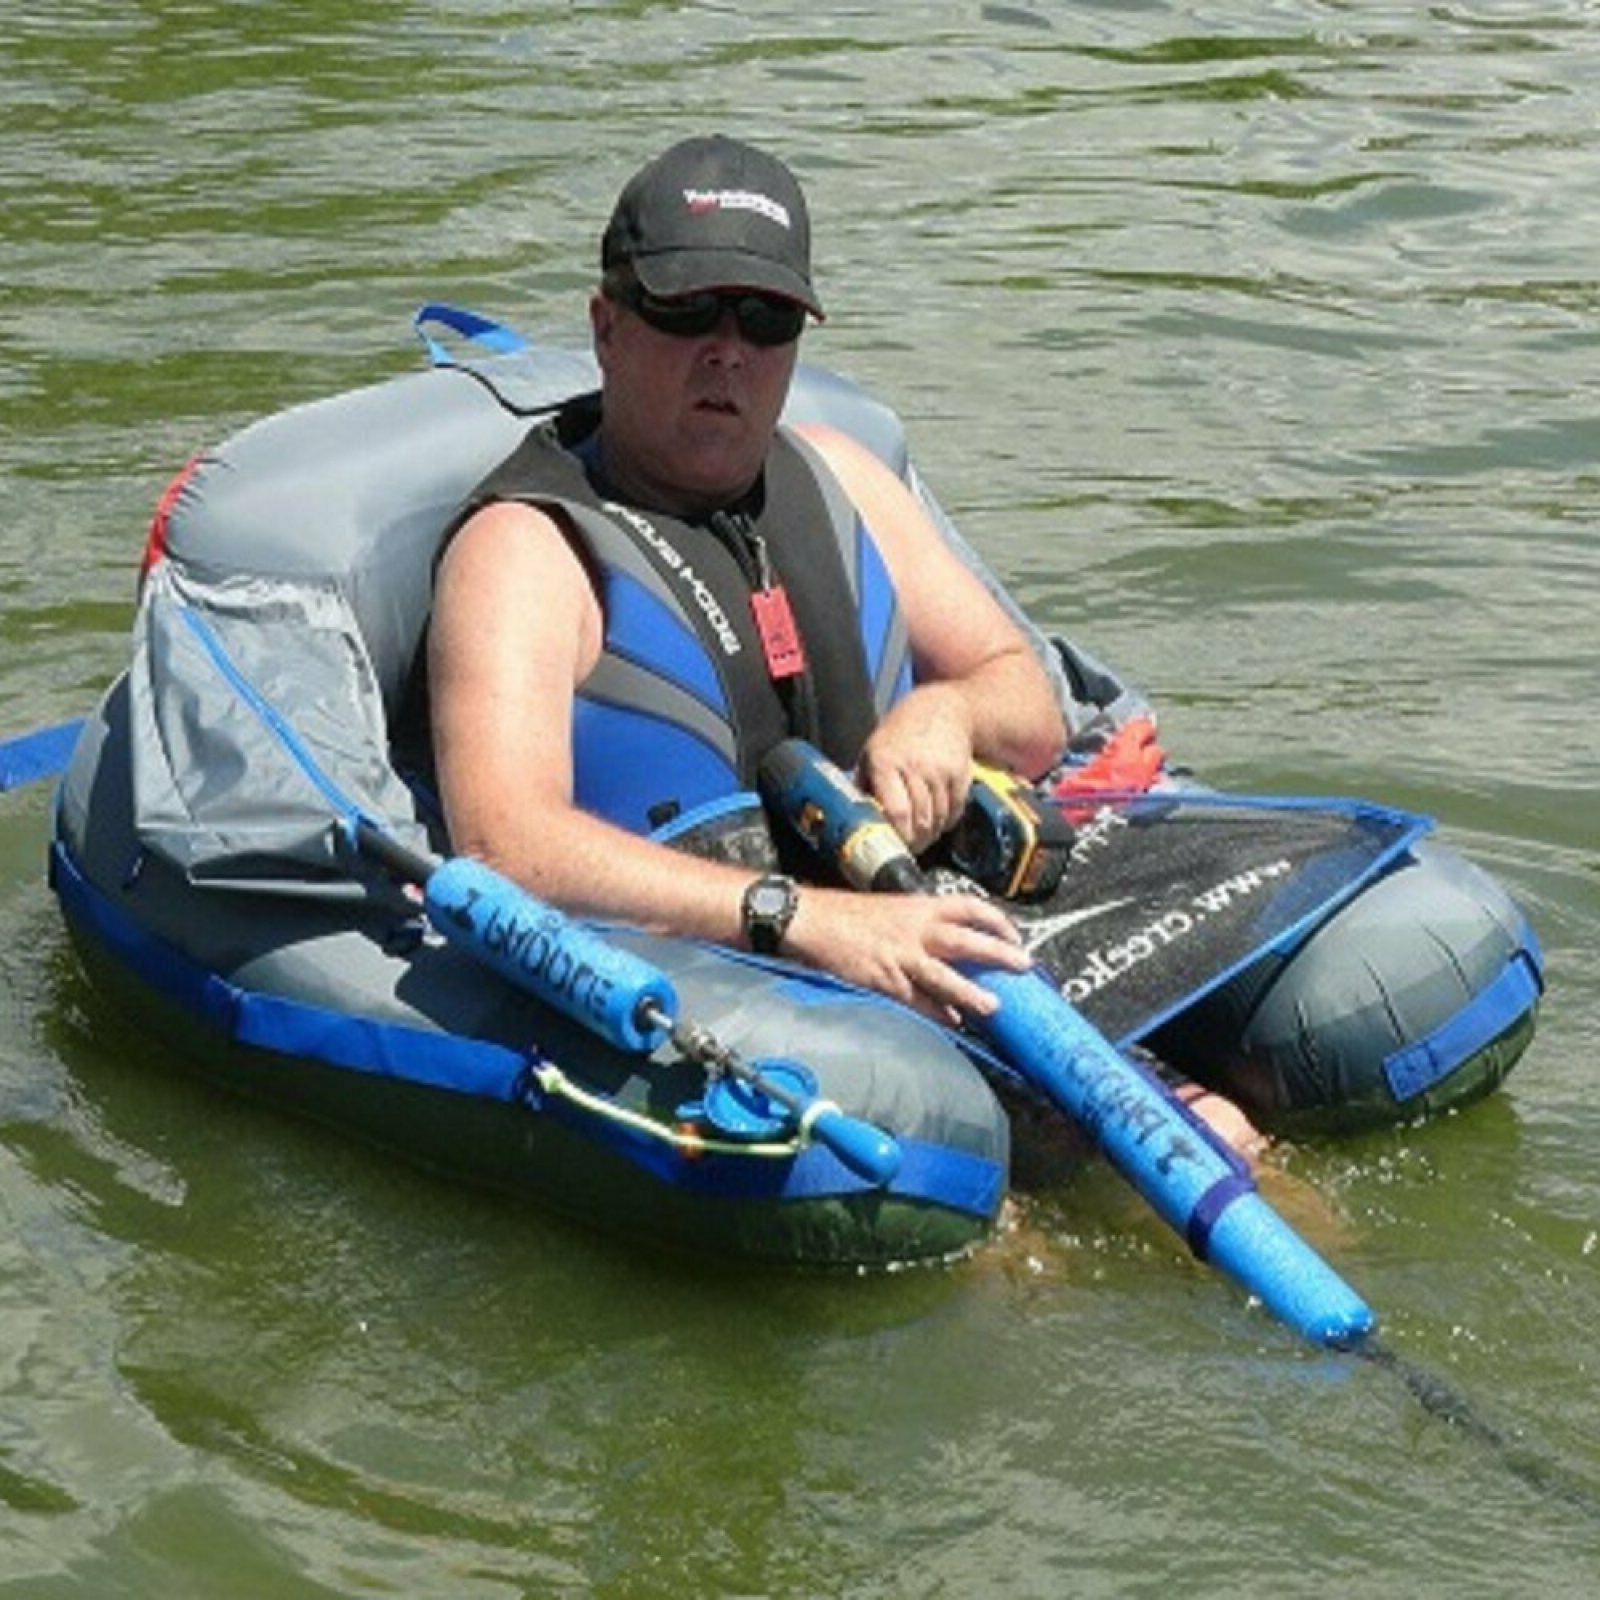 Boat Paddle Trolling Motor Use Water Access